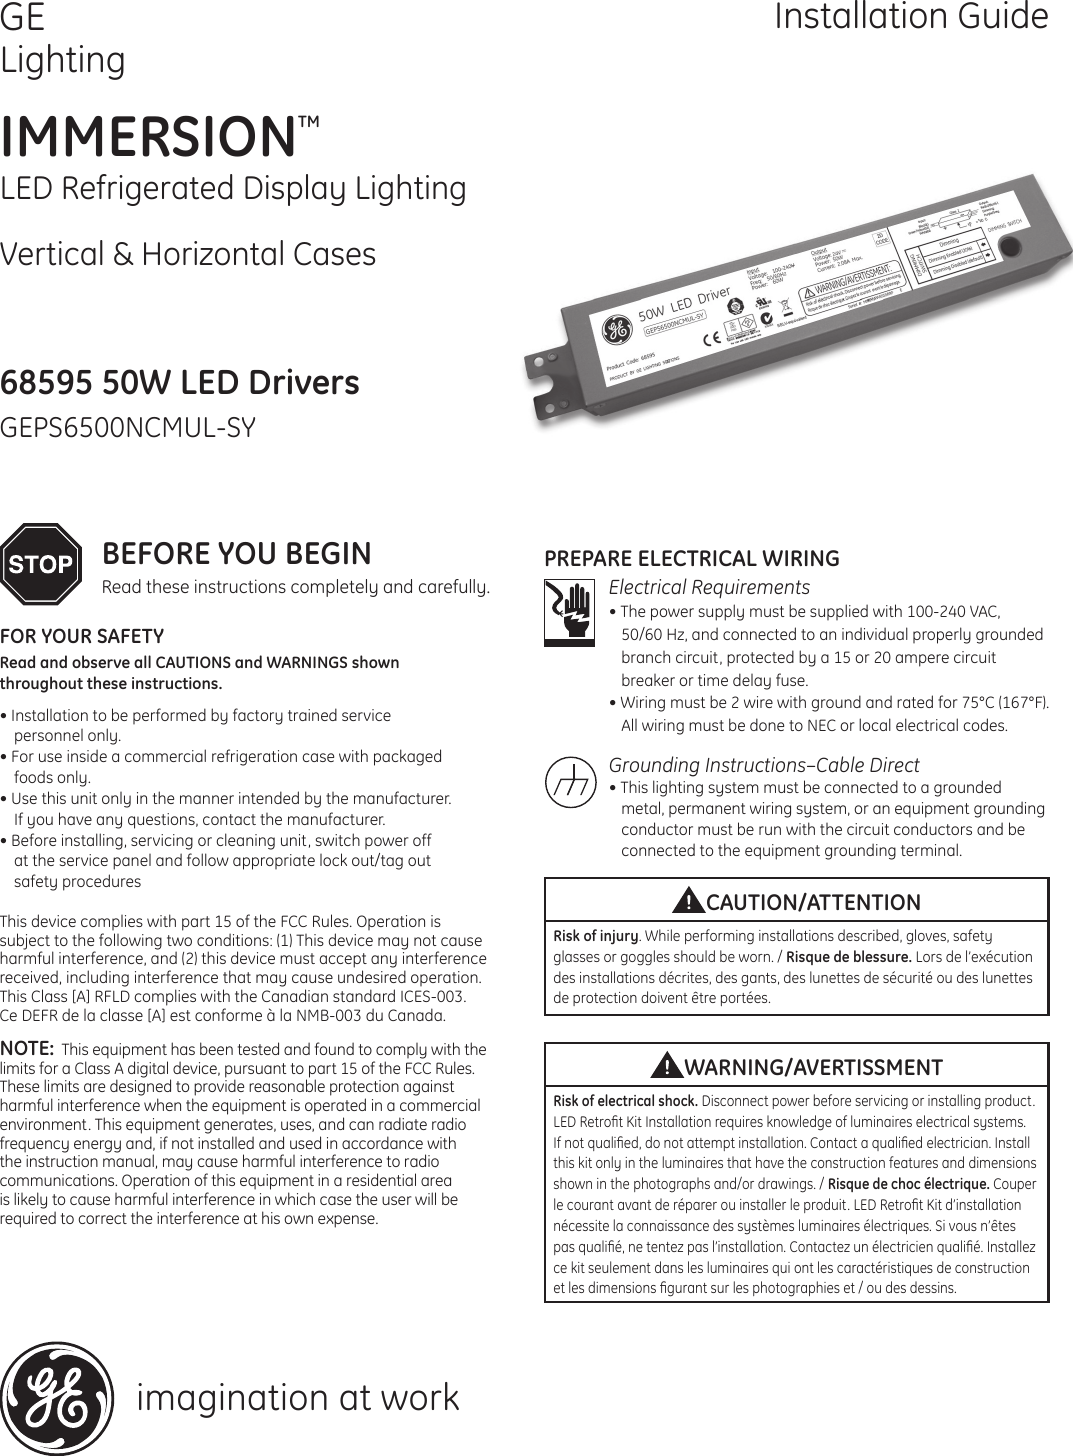 Led Driver Wiring Instructions Ge Appliances Rh30 System Installation Guide Immersion Refrigerated Display Lighting Geps6500ncmul Sy 68595